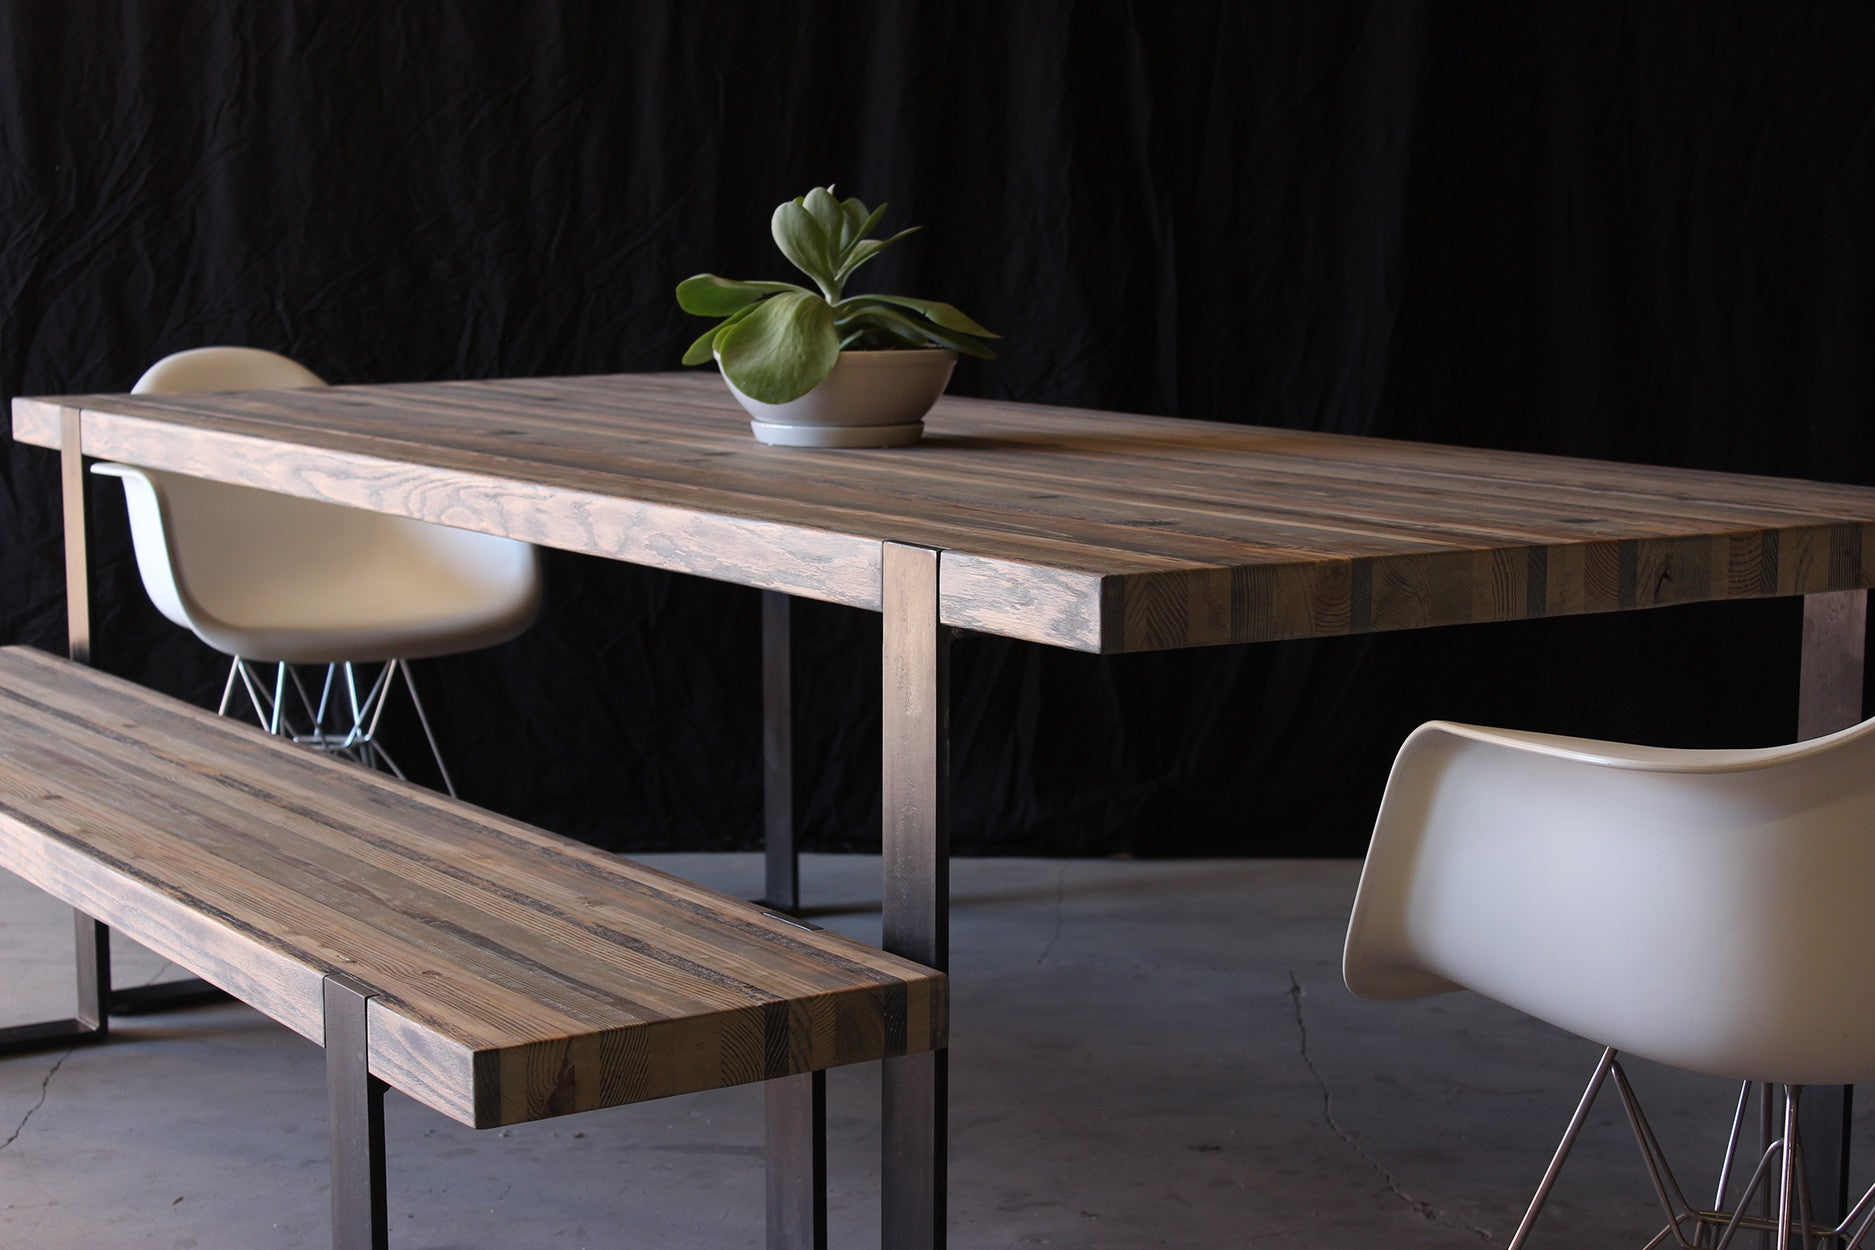 8' original dining table | aged wood finish with darkened steel